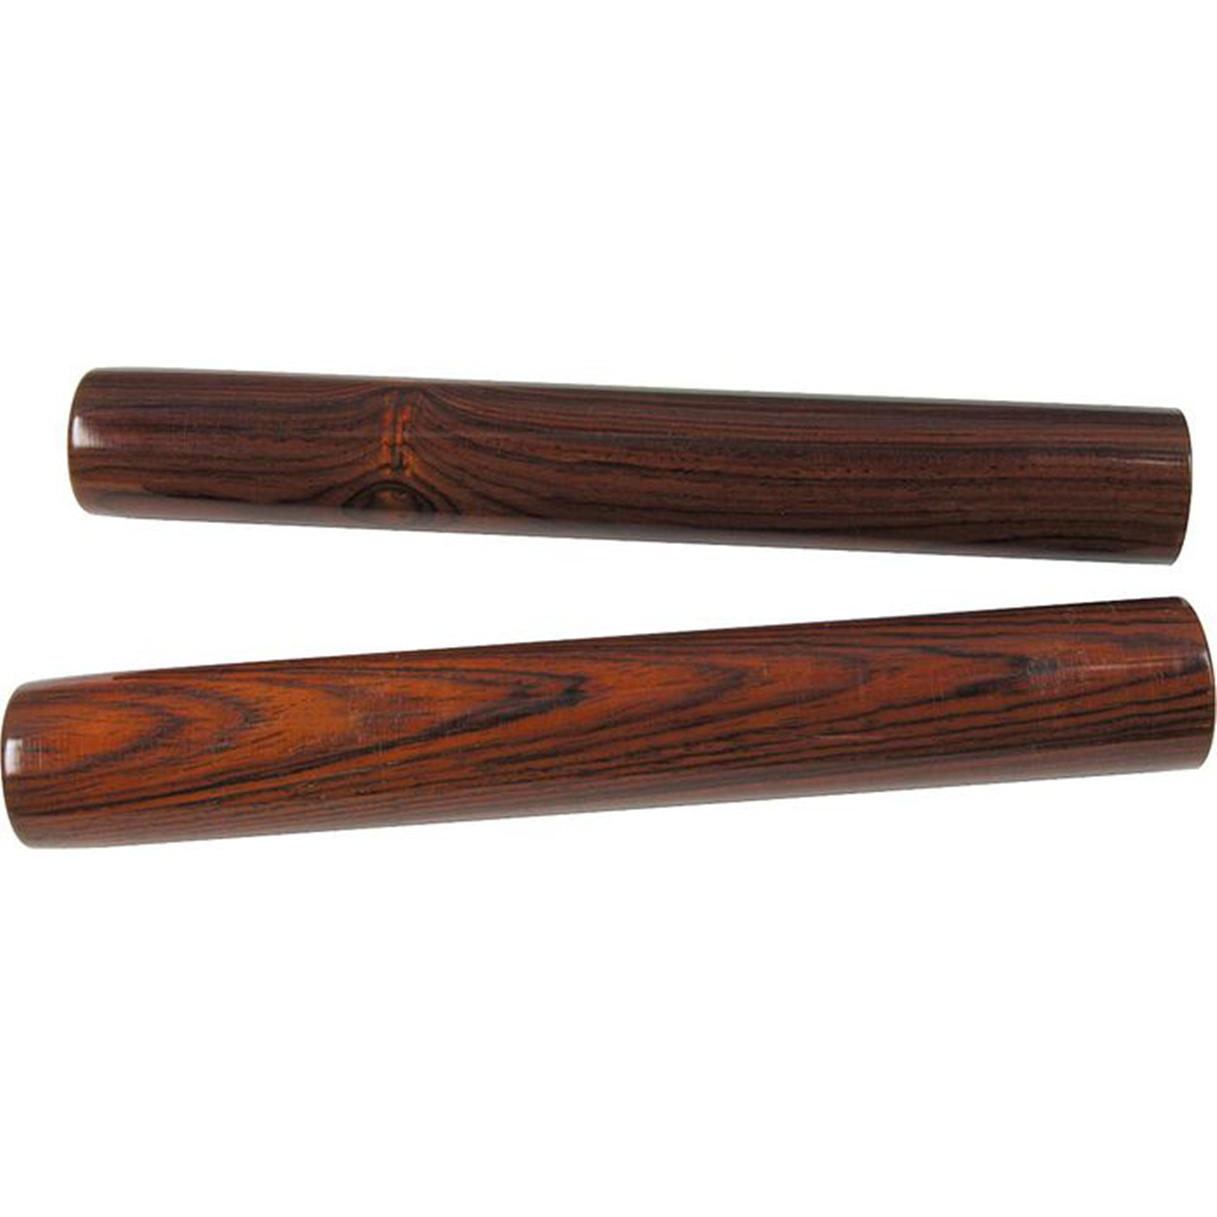 Ludwig Rosewood Claves